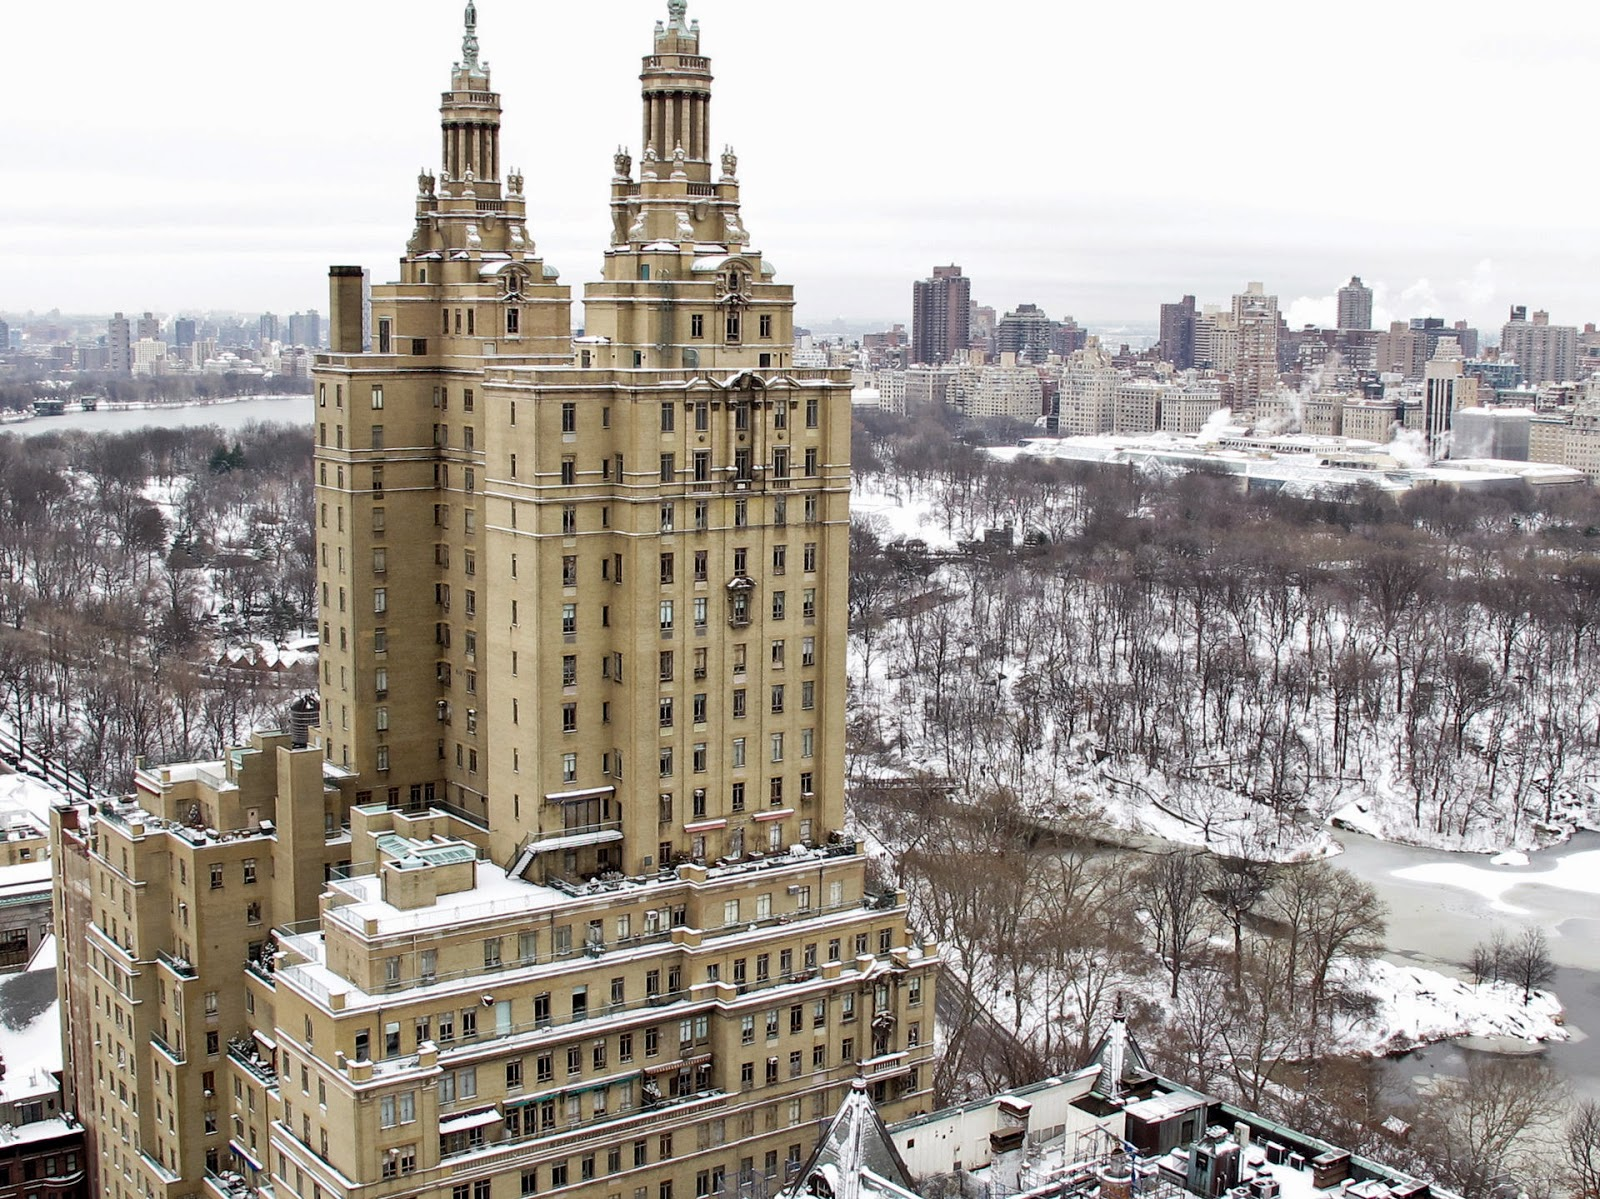 San Remo co-op building on Central Park in New York City